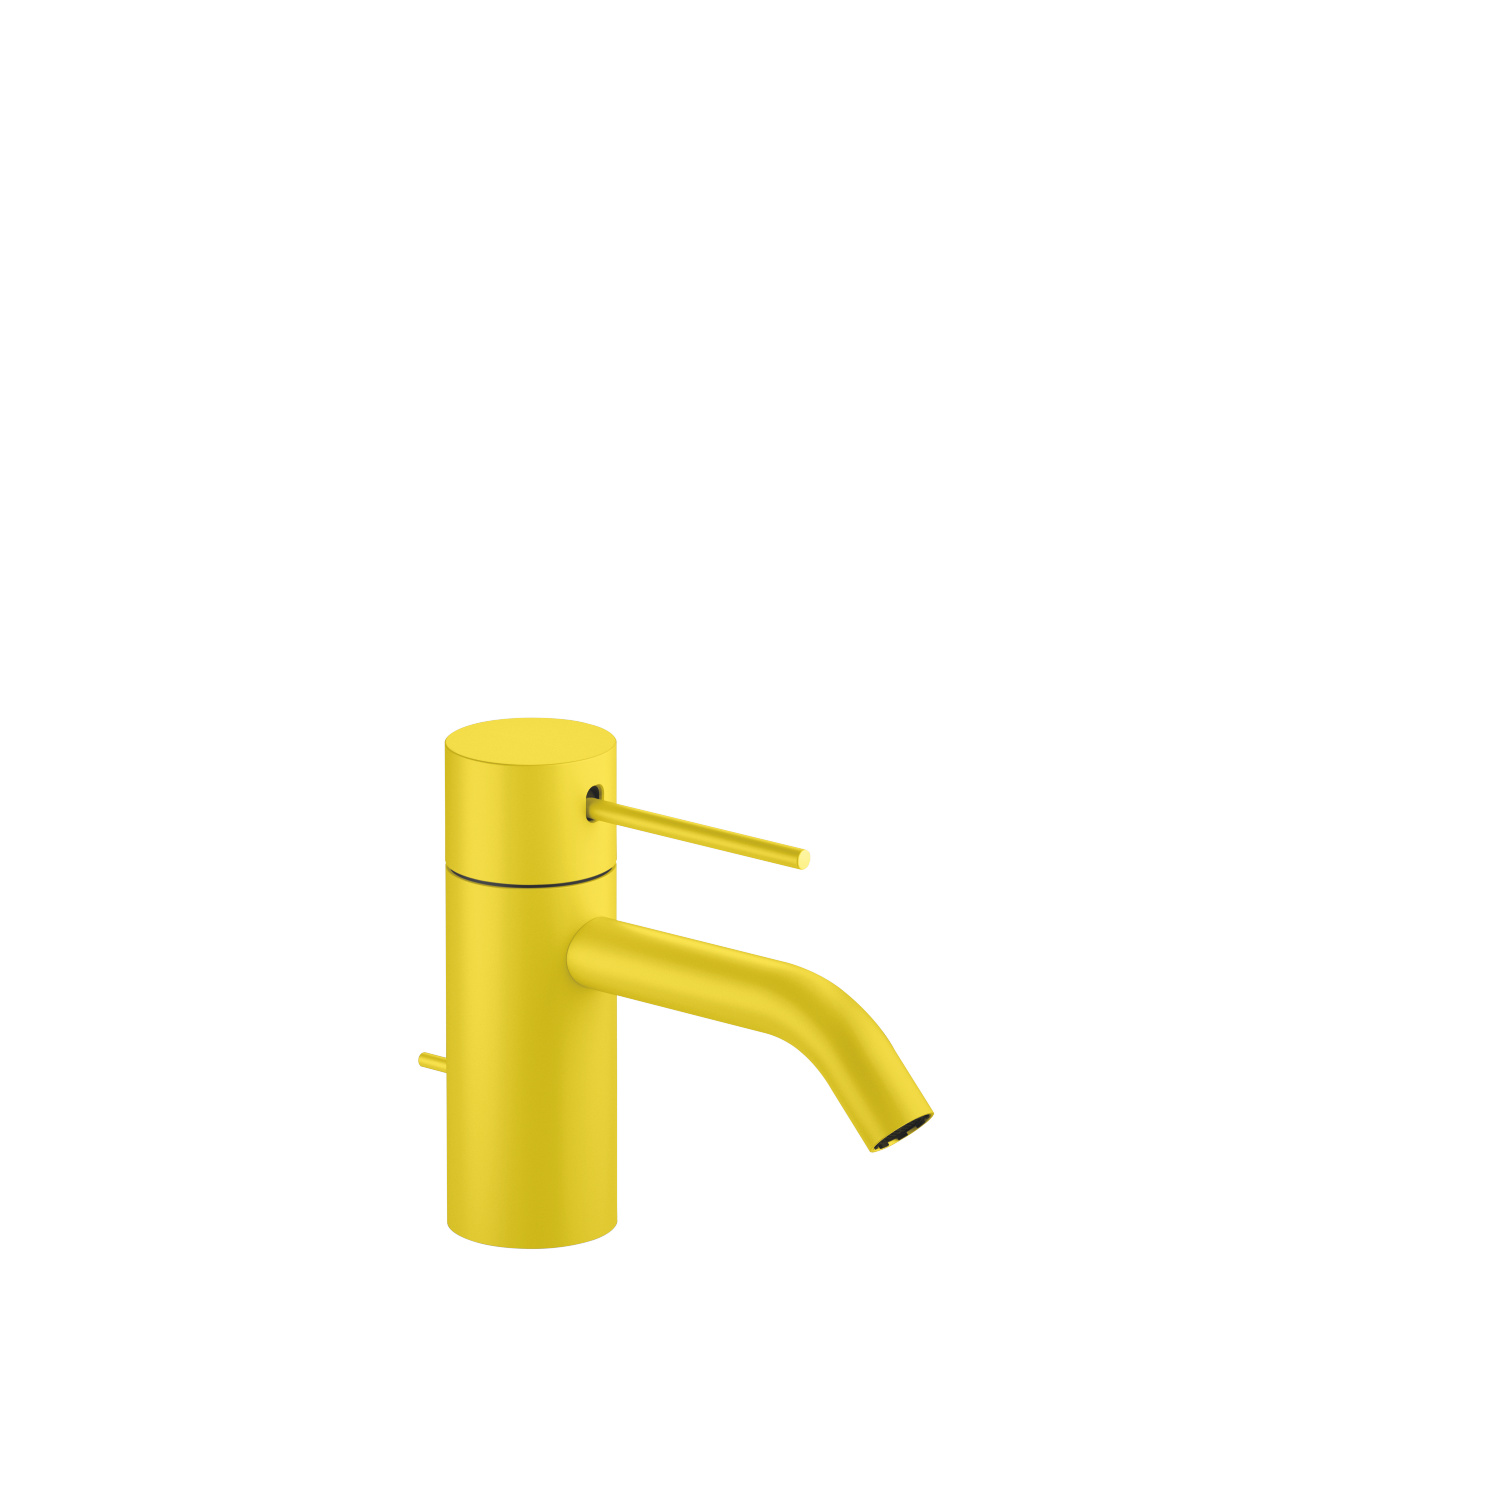 META SLIM Single-lever basin mixer with pop-up waste - yellow - 33 501 662-59